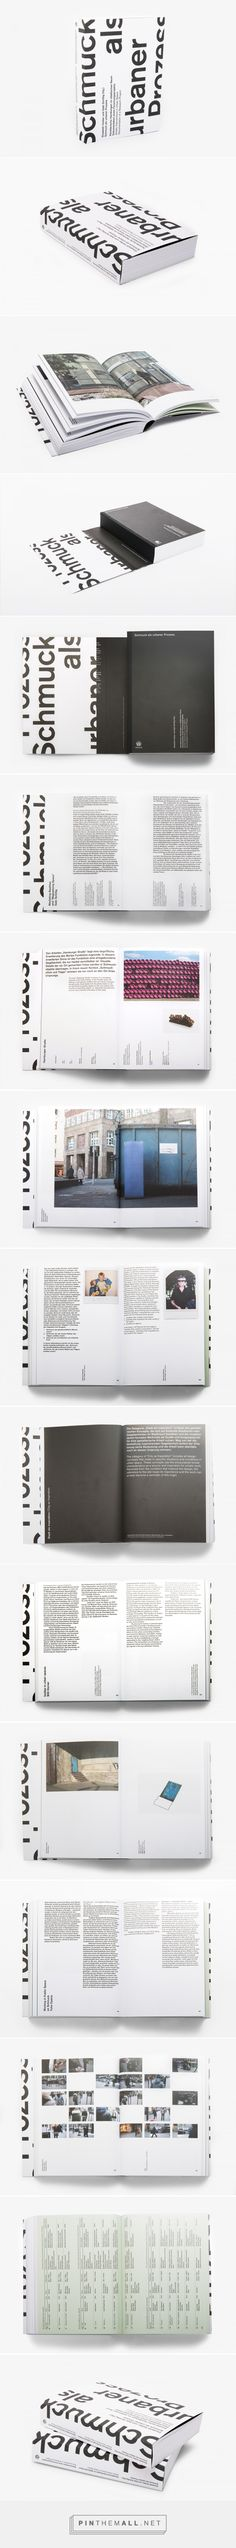 Publication Schmuck als urbaner Prozess on Behance... - a grouped images picture - Pin Them All